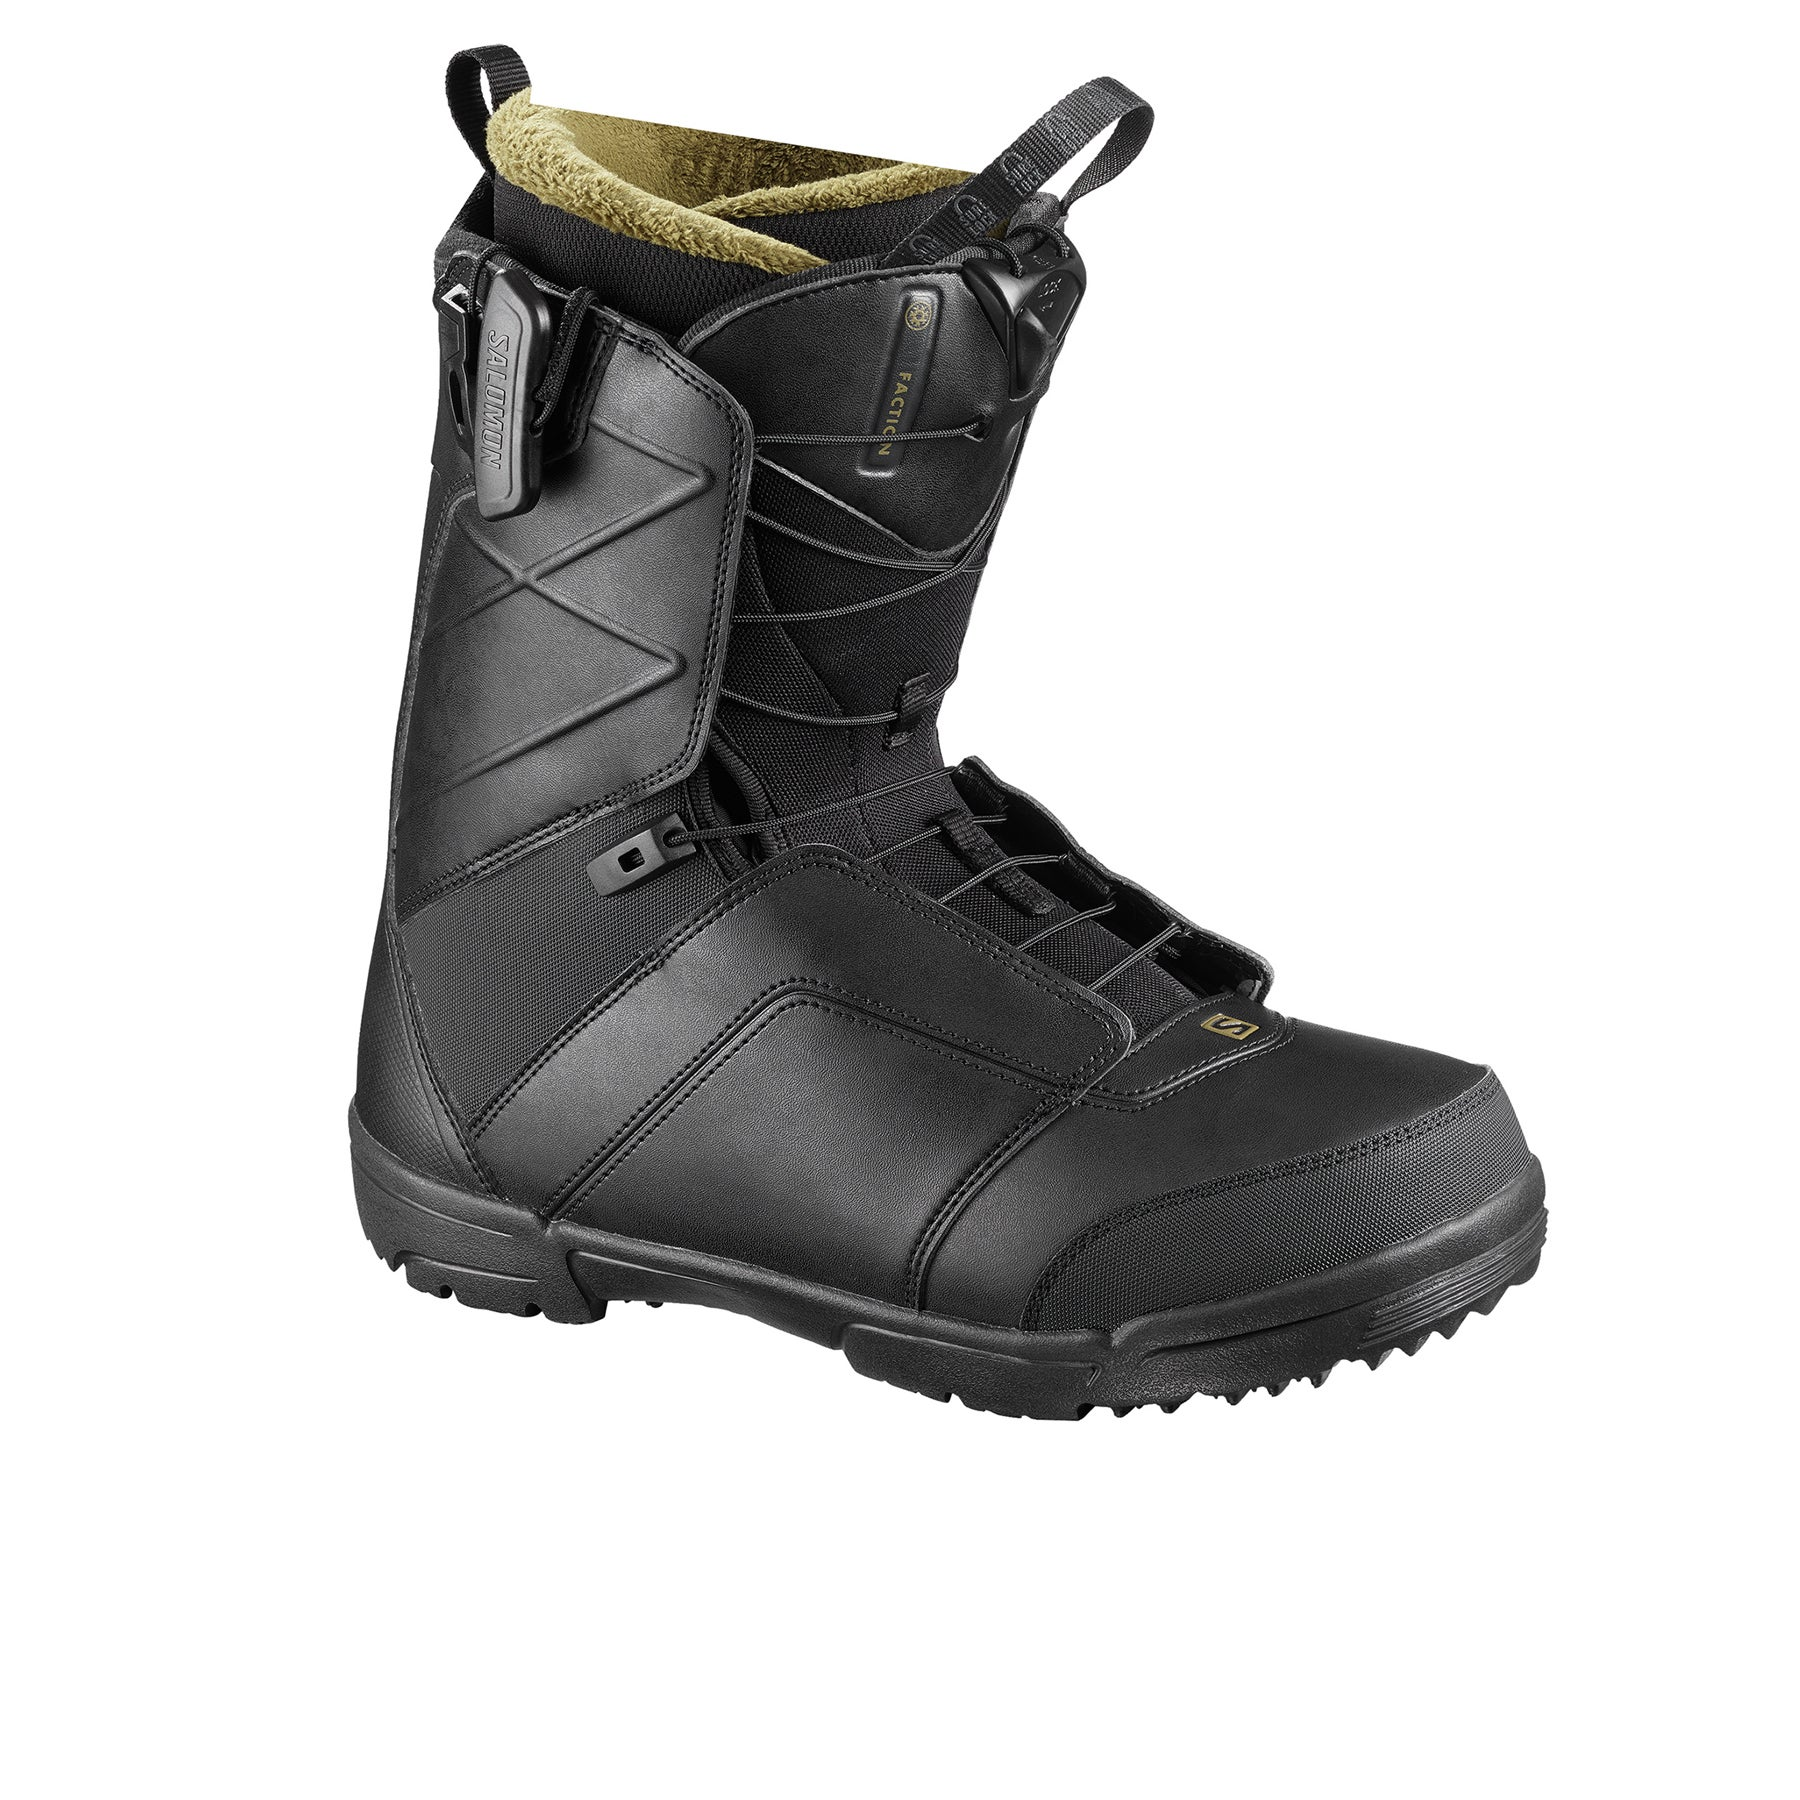 c9cbcdc9 Salomon Faction Snowboard Boots available from Surfdome